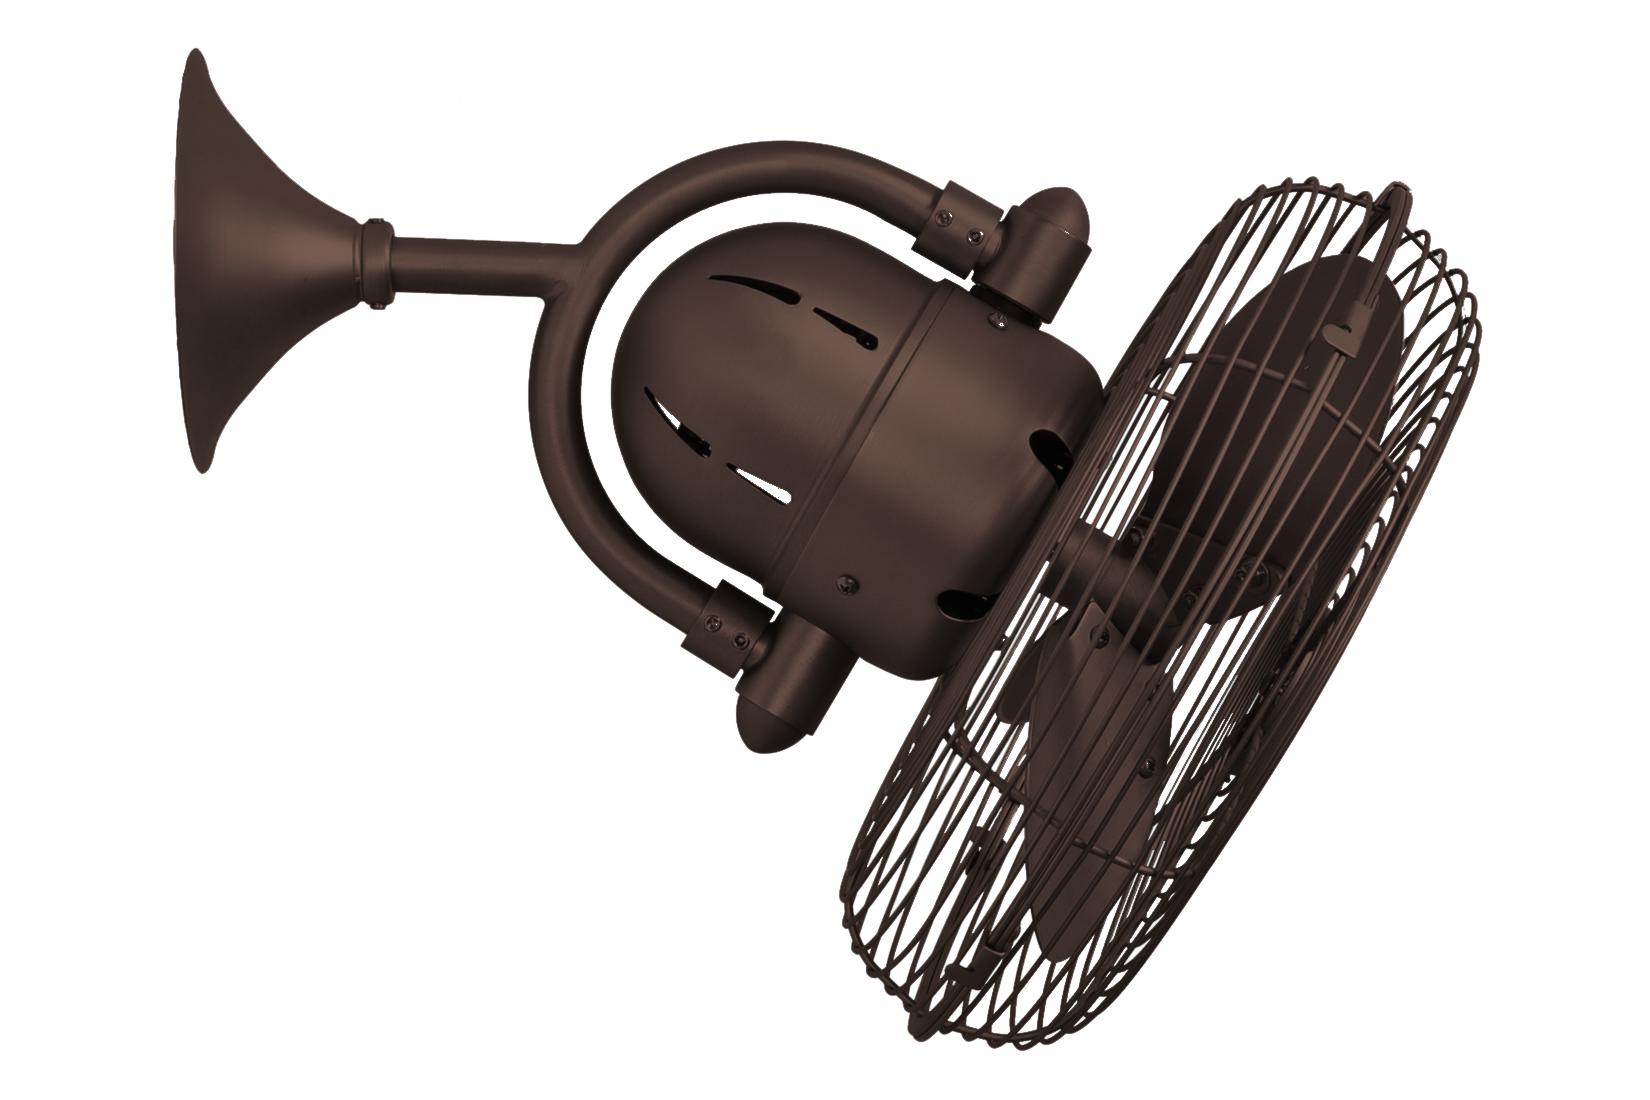 Wall Mount Outdoor Rated Fans : Cooling down while saving space with wall mounted ceiling